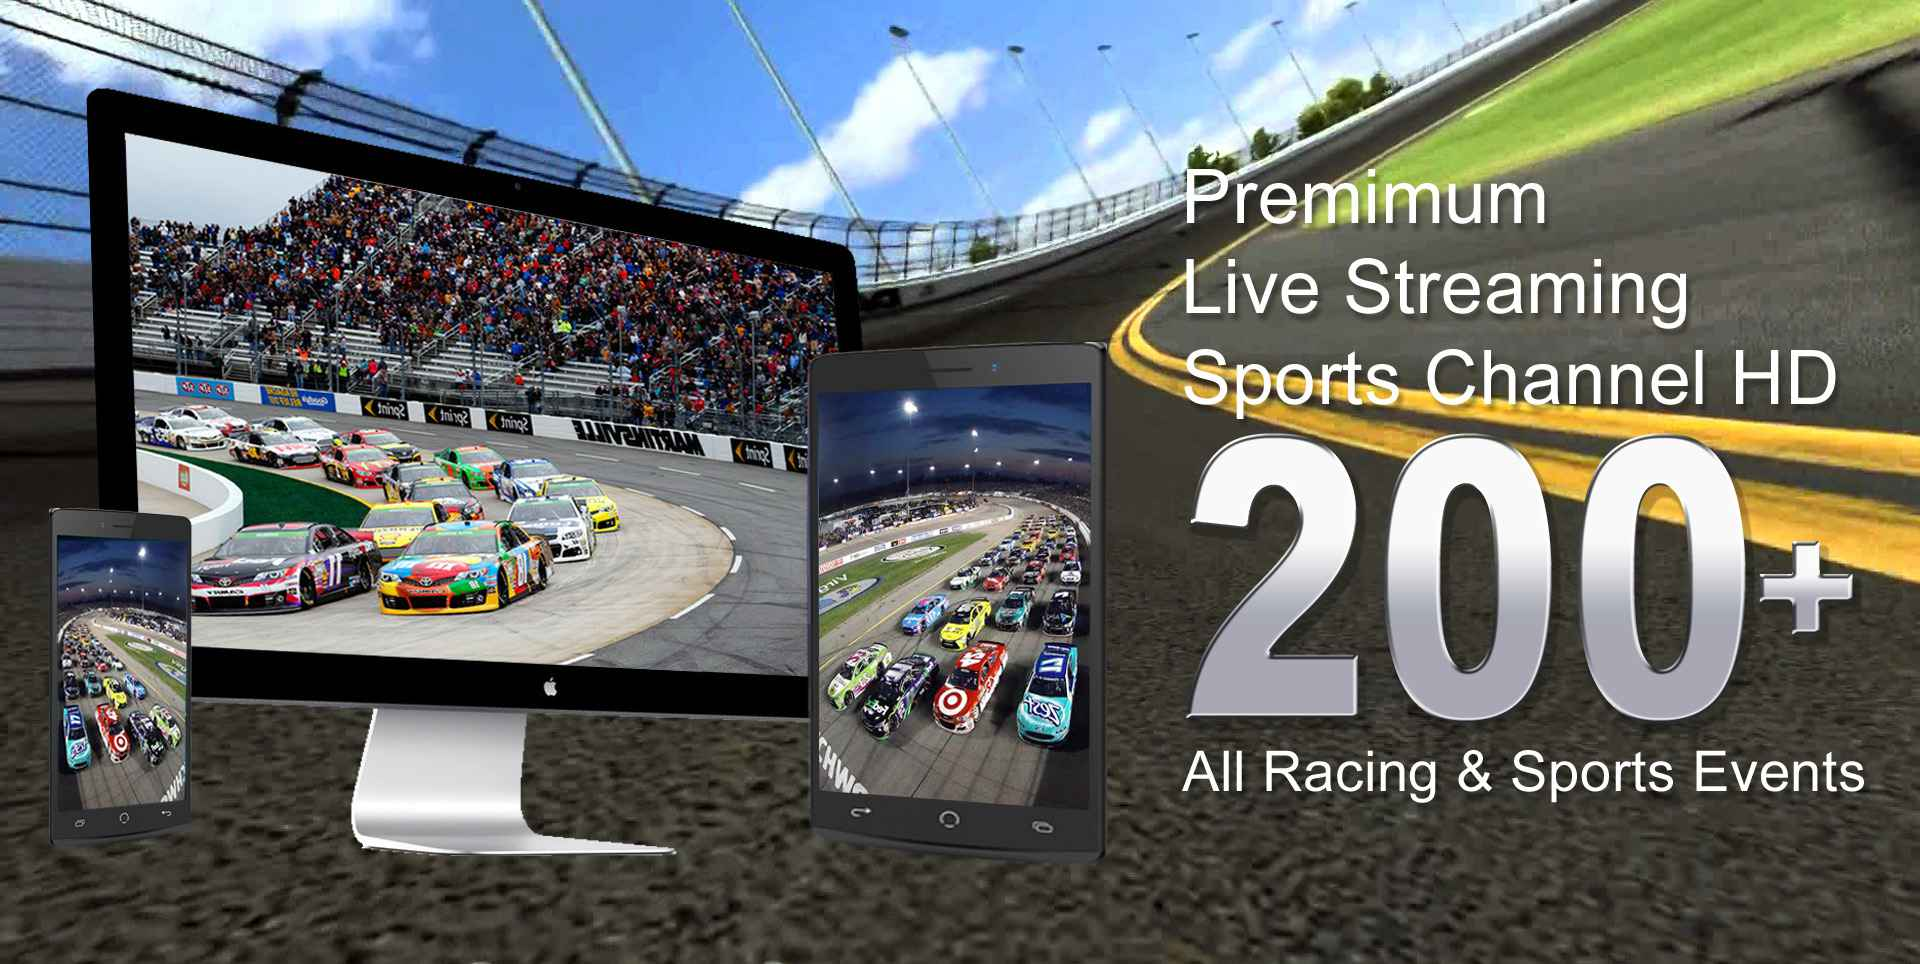 Nascar Camping World 500 at Talladega Online